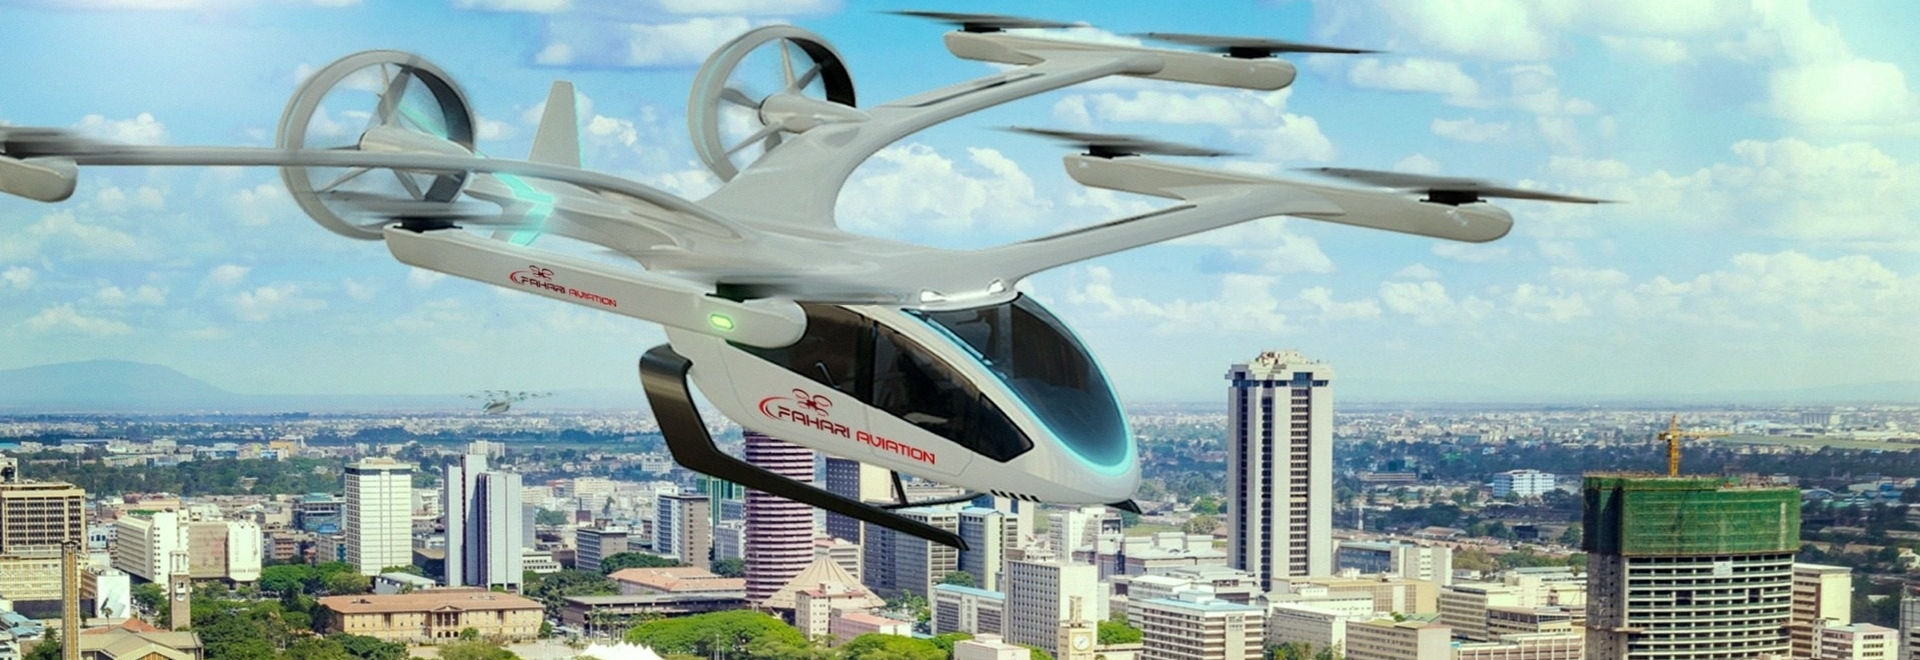 Embraer's Eve and Kenya Airways partner on the future of Urban Air Mobility